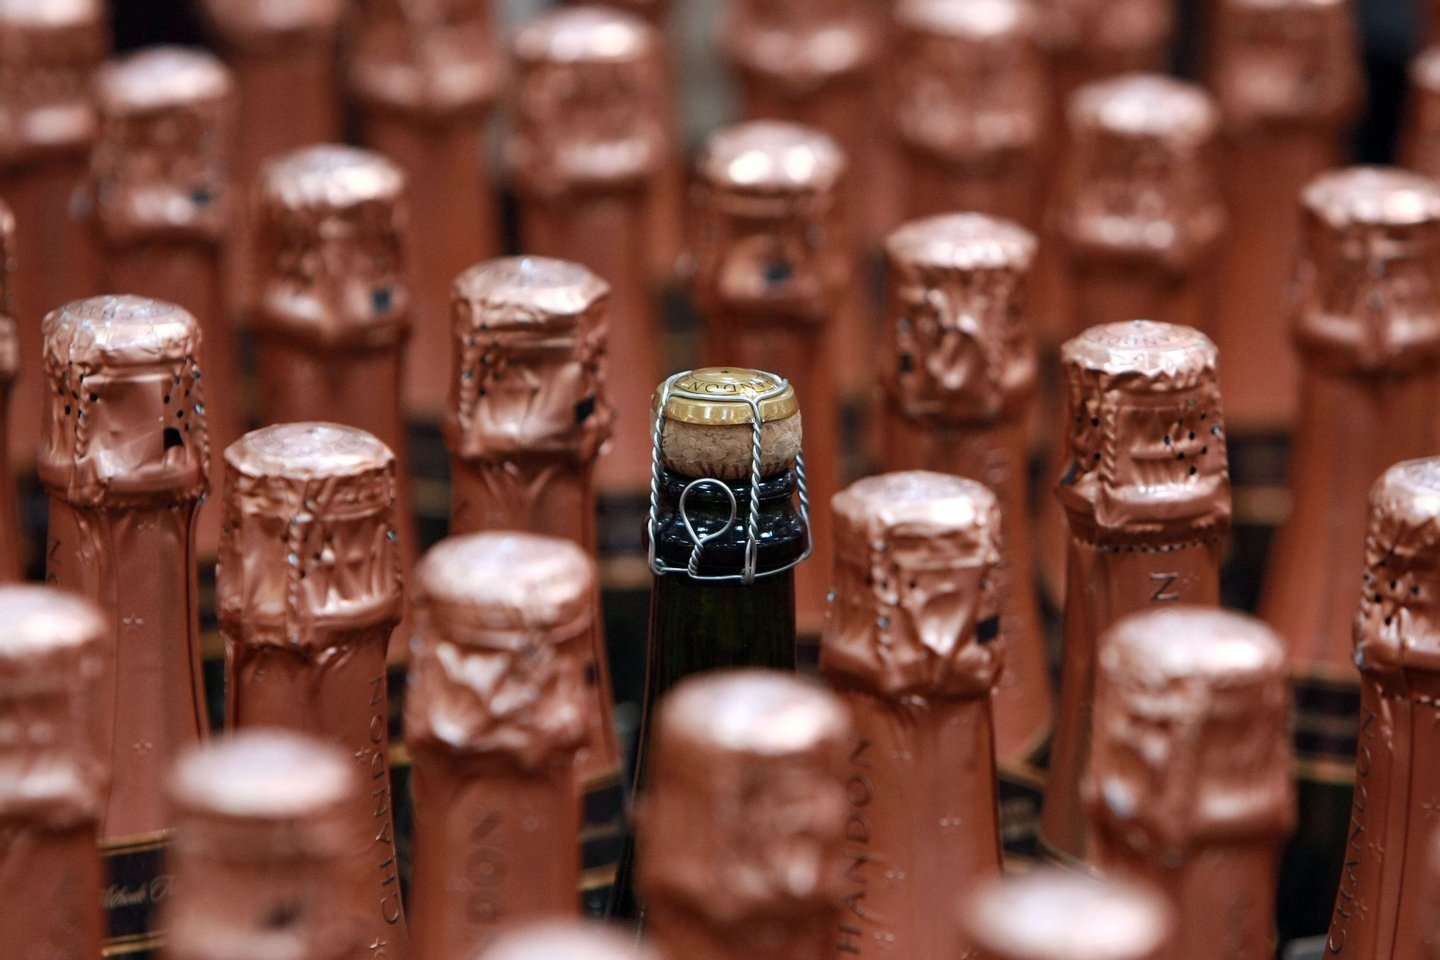 SOUTH SAN FRANCISCO, CA - DECEMBER 29:  Bottles of sparkling wine are seen on display at a Costco store December 29, 2008 in South San Francisco, California. As the economy continues to falter, sales of sparkling wine and champagne are down this year compared to a 4 percent surge from last year.  (Photo by Justin Sullivan/Getty Images)